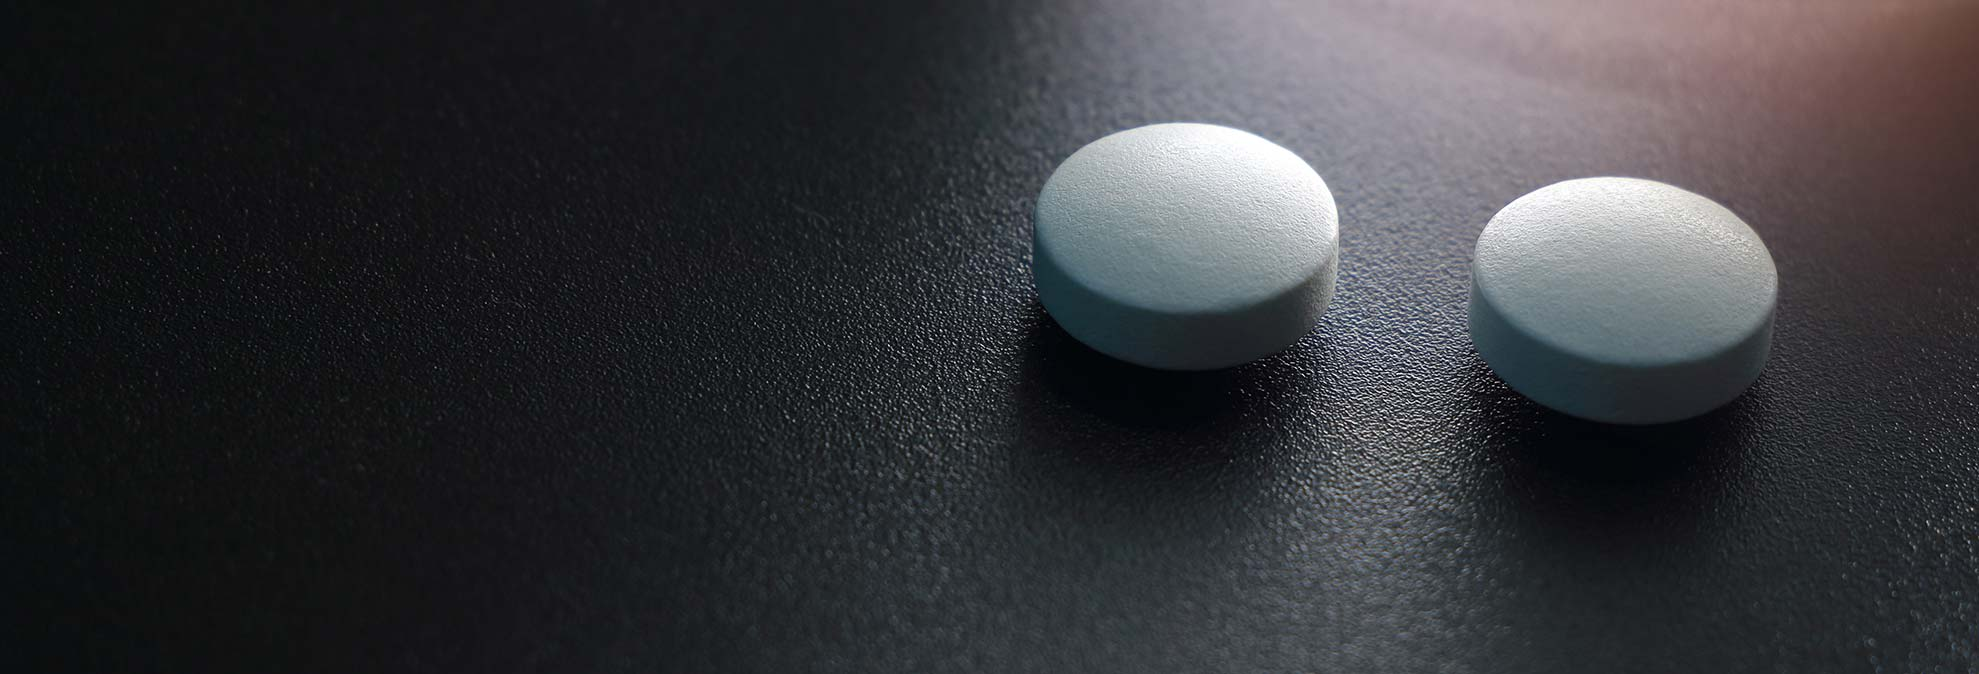 Why Seniors Should Think Twice About Sleep Meds Consumer